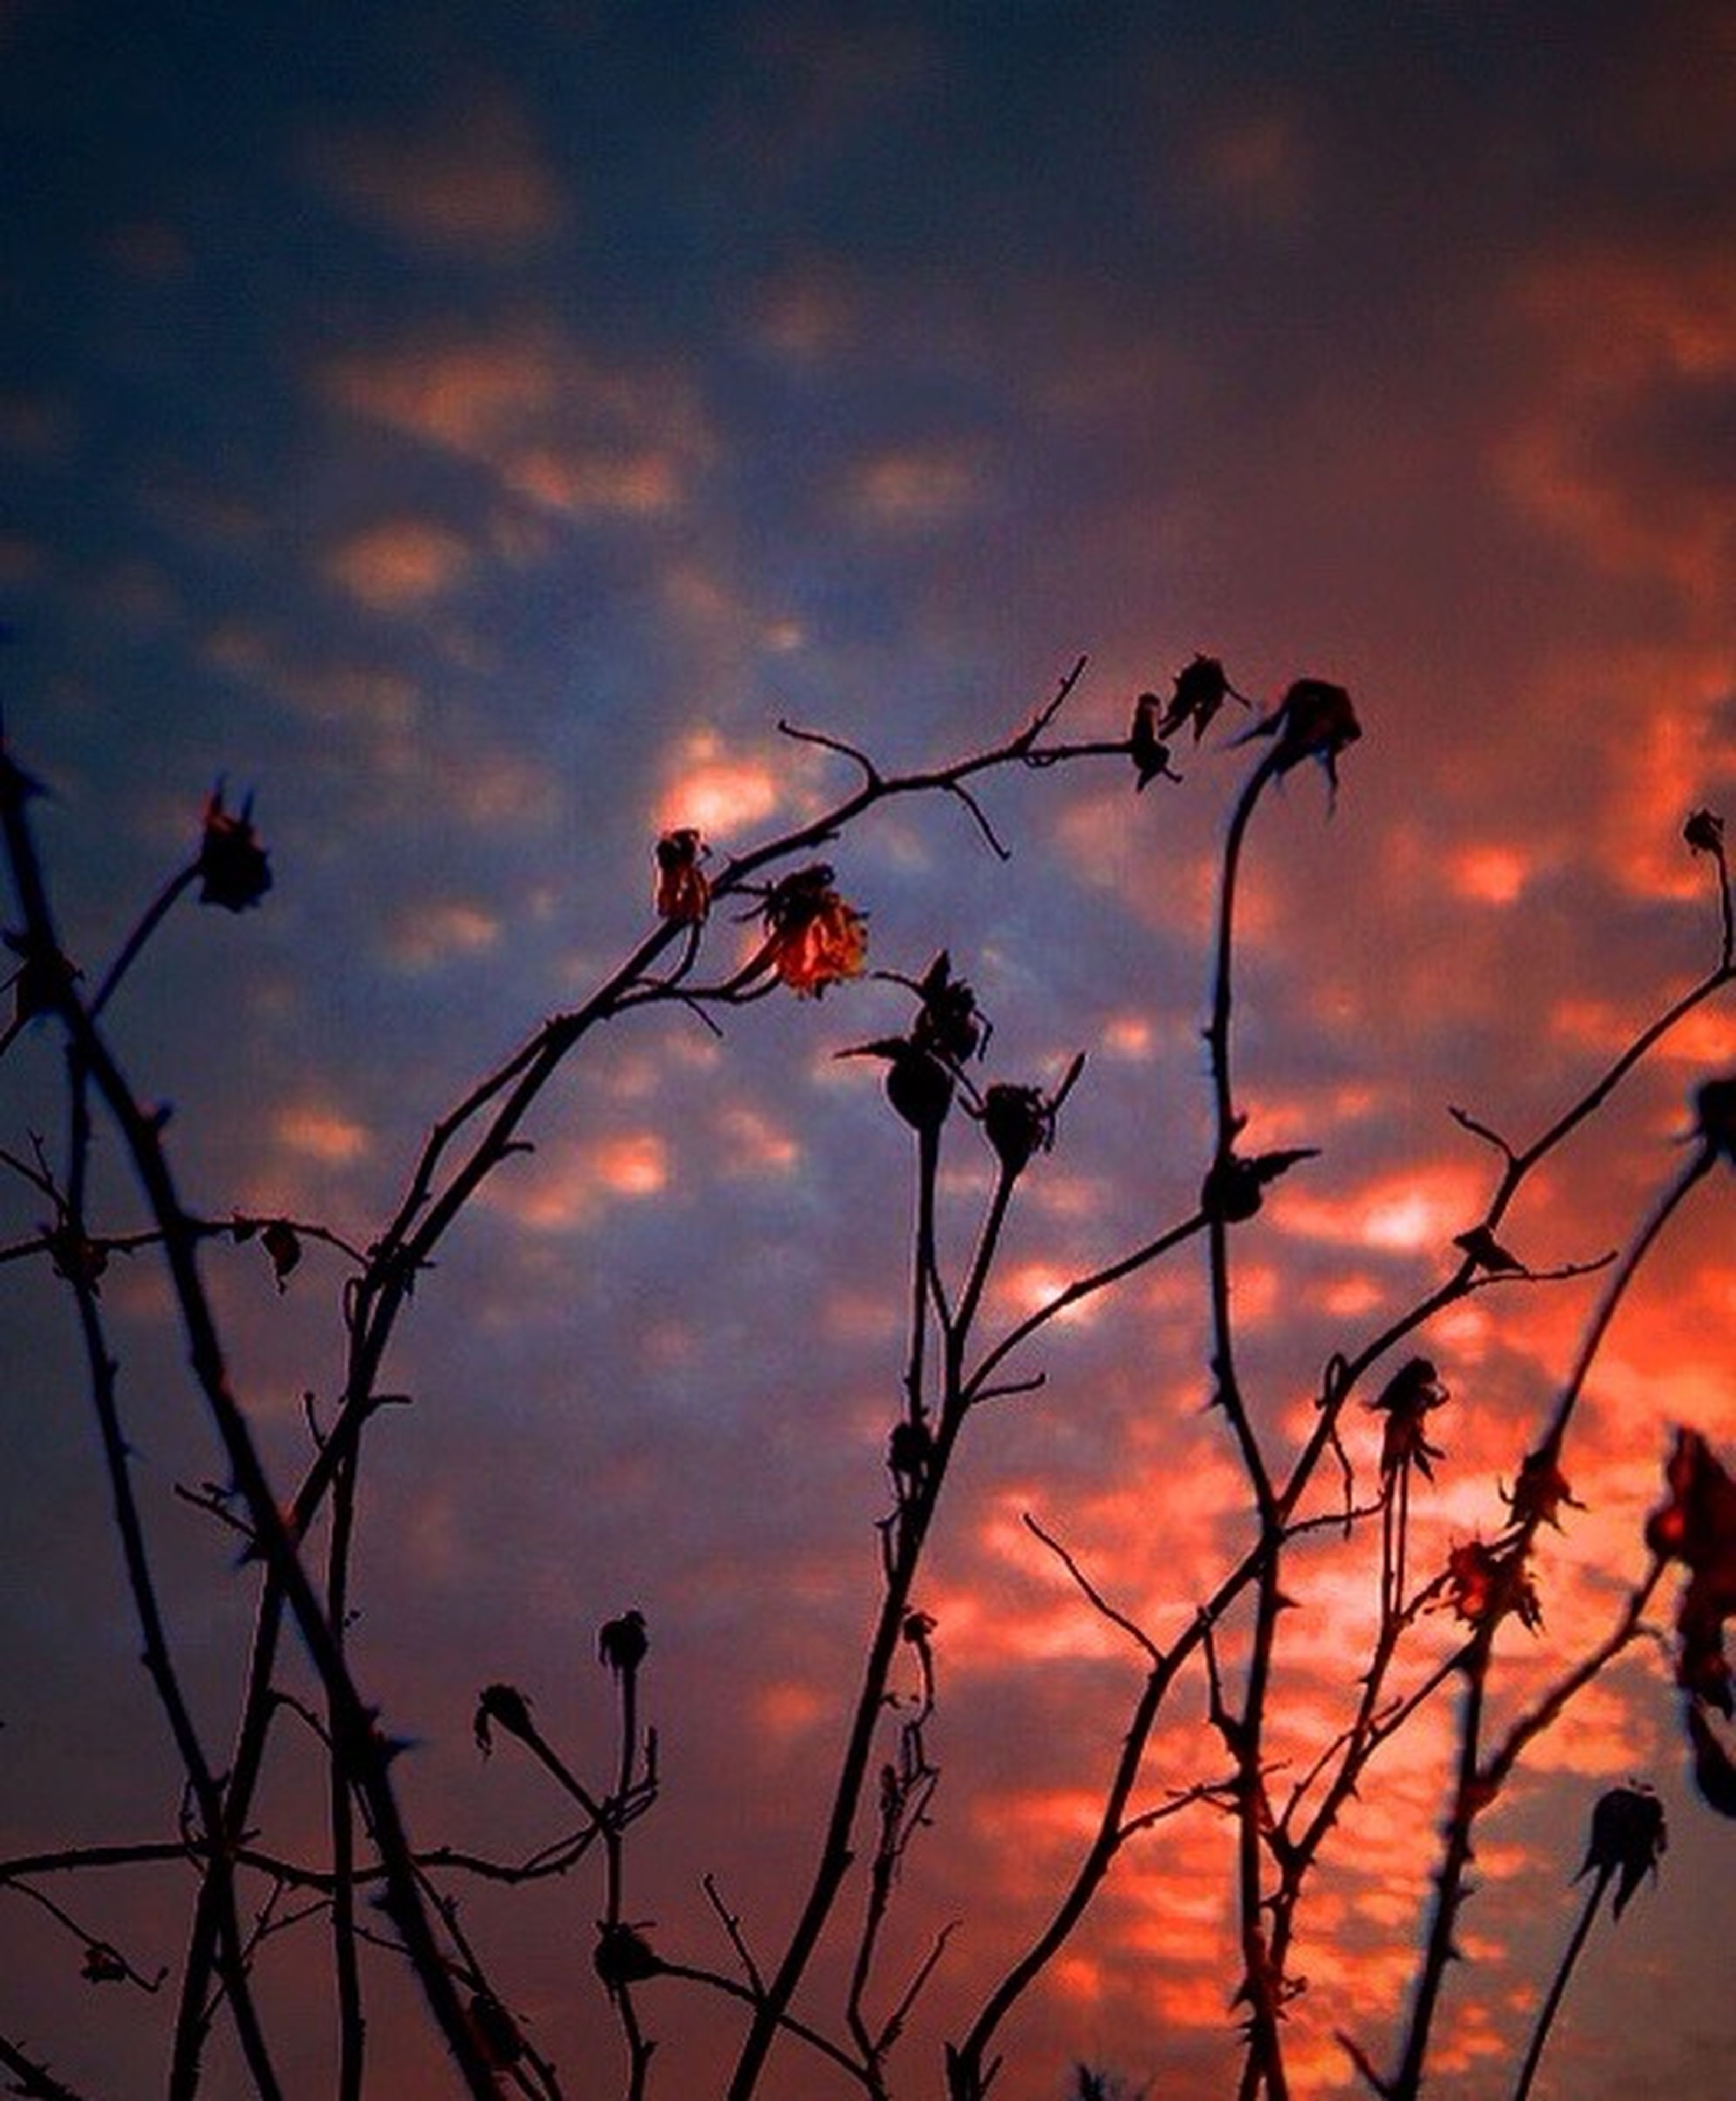 sunset, sky, silhouette, cloud - sky, orange color, low angle view, nature, cloudy, beauty in nature, tranquility, cloud, dramatic sky, plant, branch, scenics, sun, growth, dusk, outdoors, bare tree